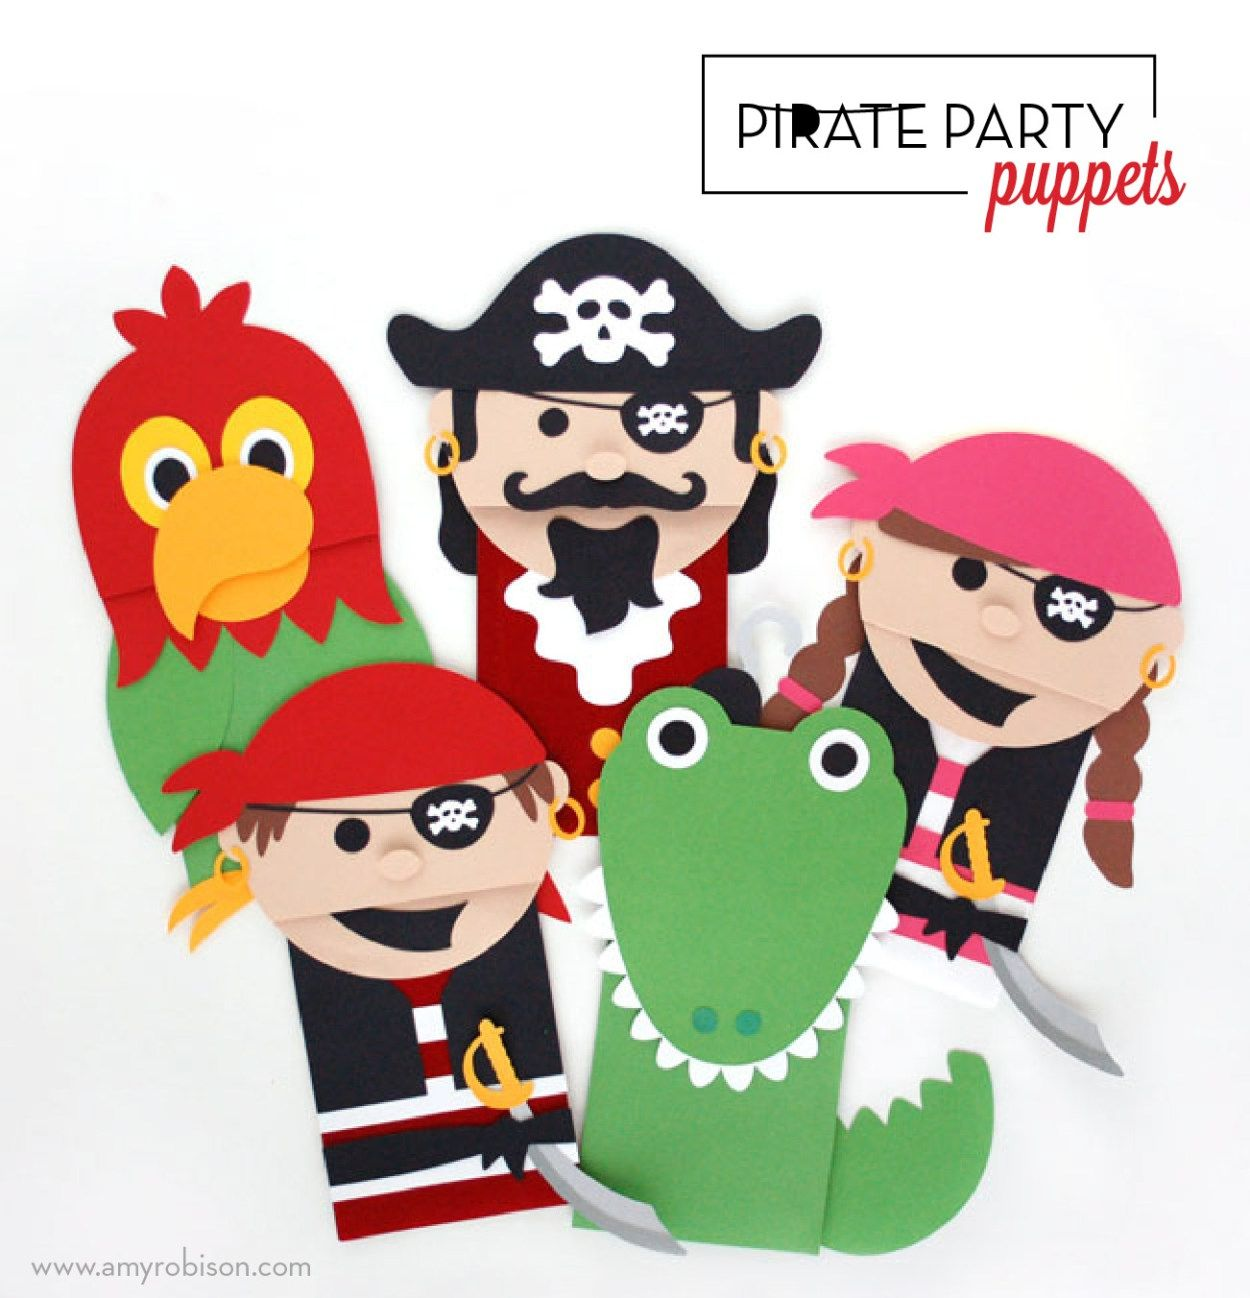 Pirate Party Puppets